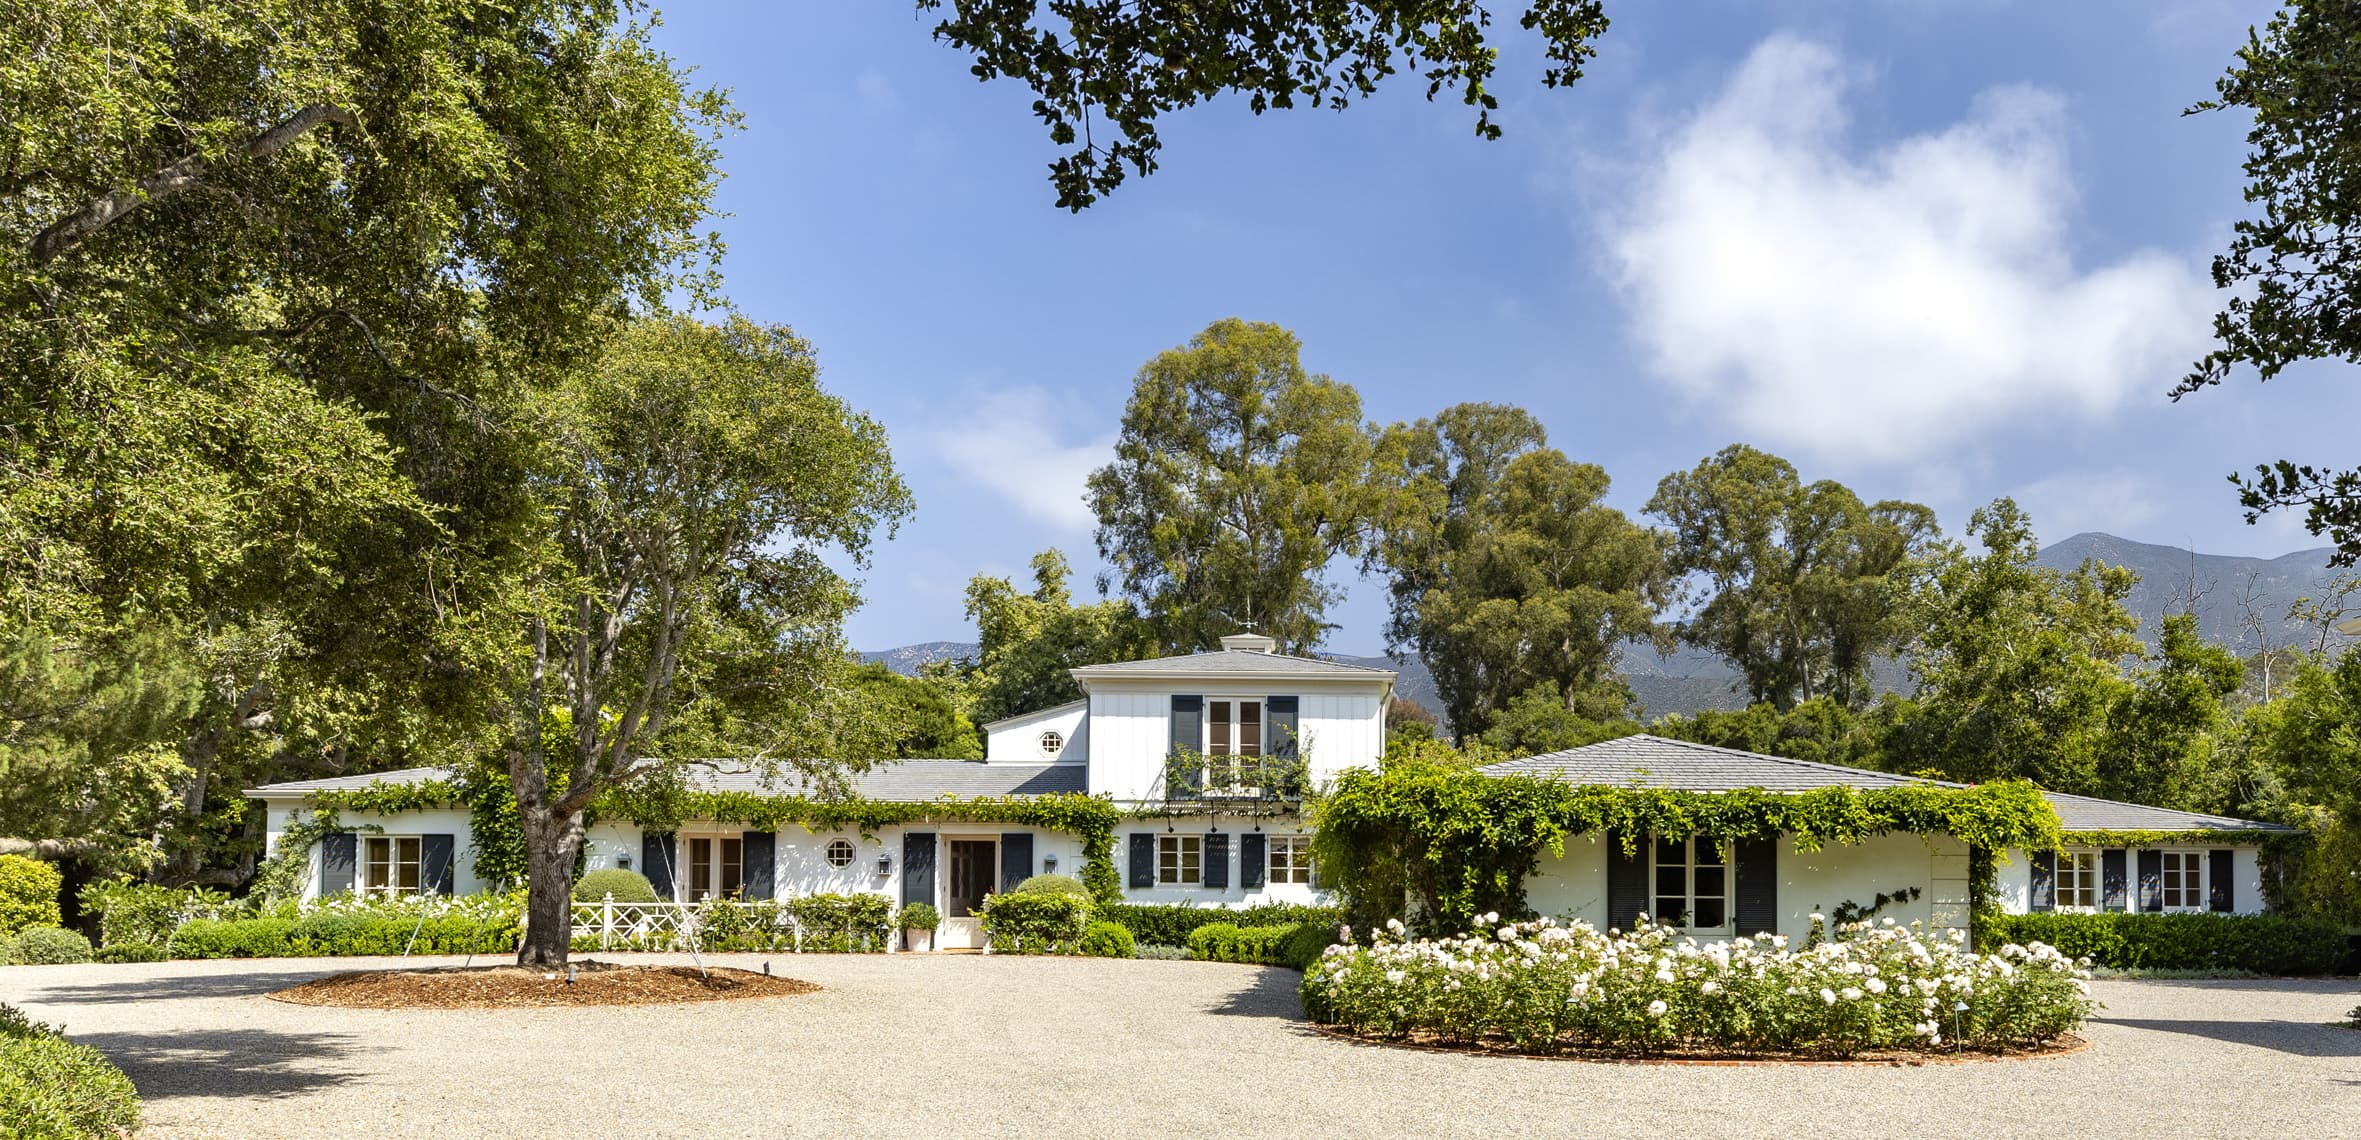 Drew Barrymore's former California home is on the market for $9.95 million — look inside